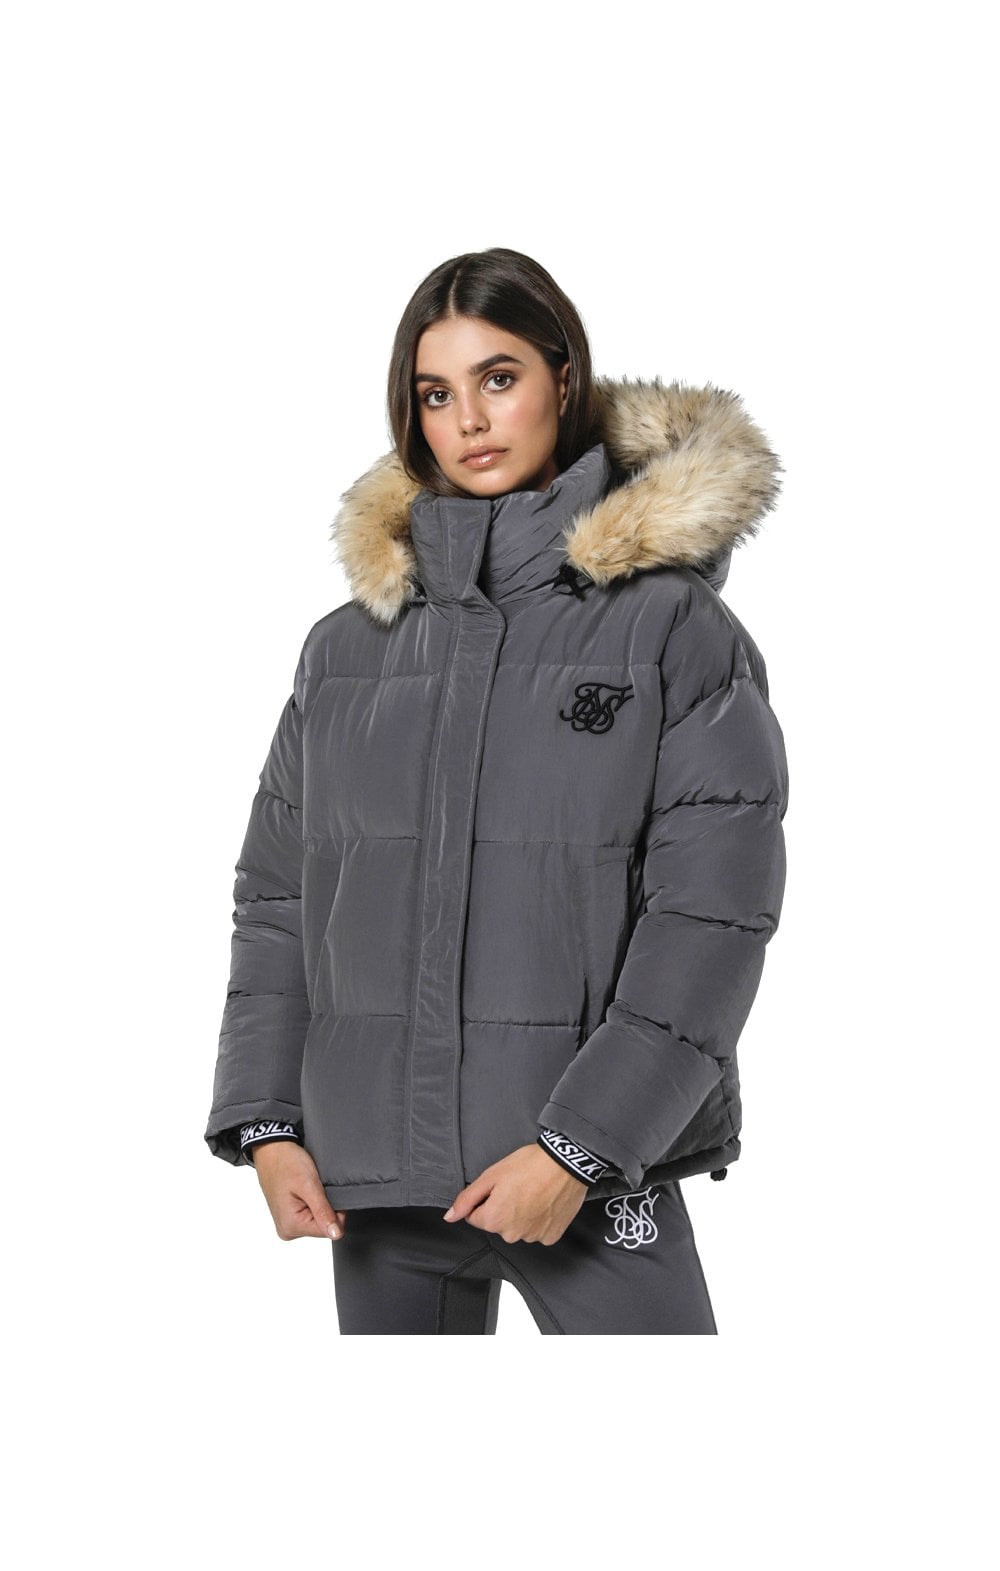 SikSilk Short Parka Jacket - Charcoal